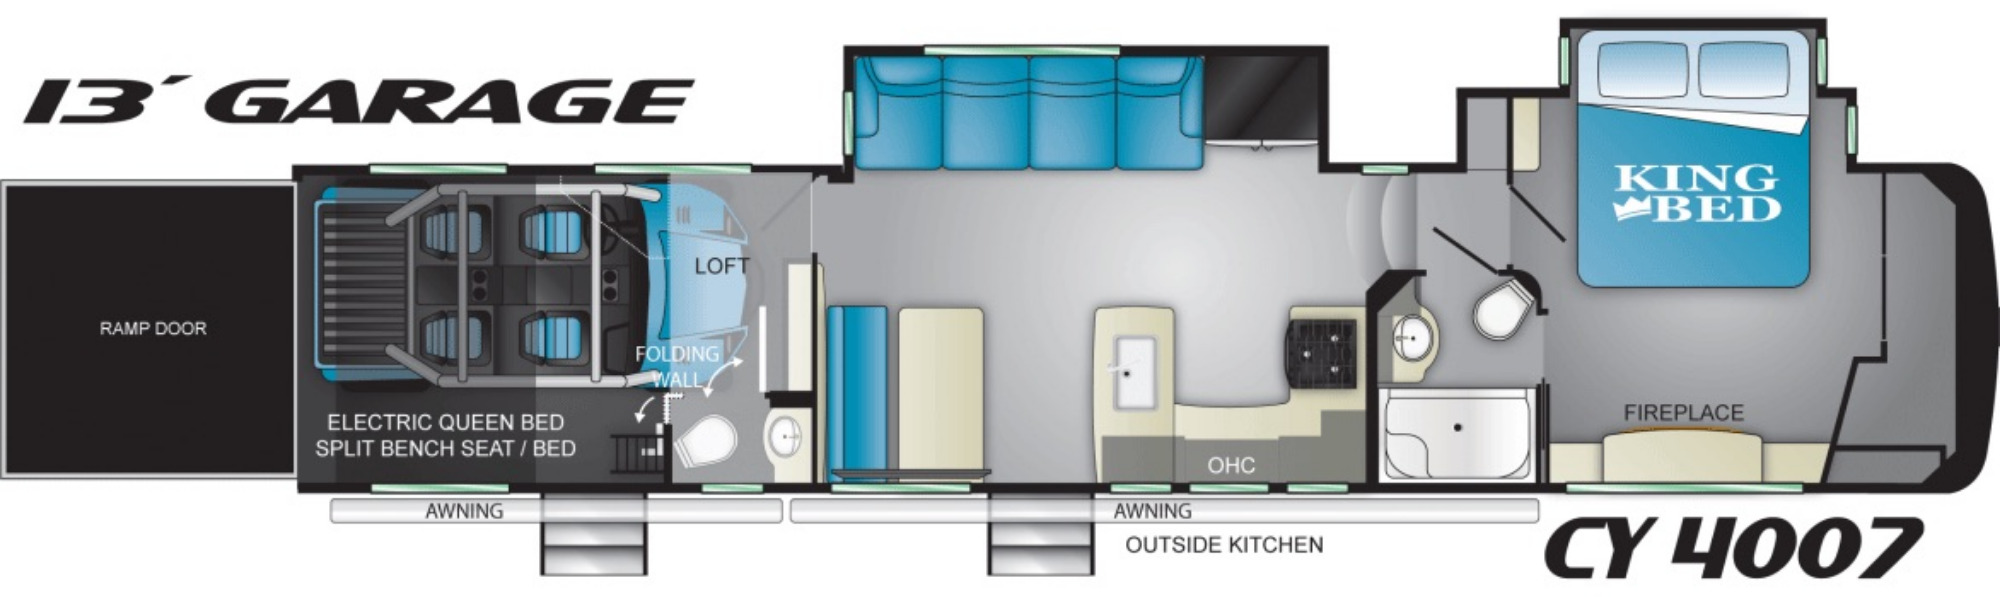 View Floor Plan for 2021 HEARTLAND CYCLONE 4007